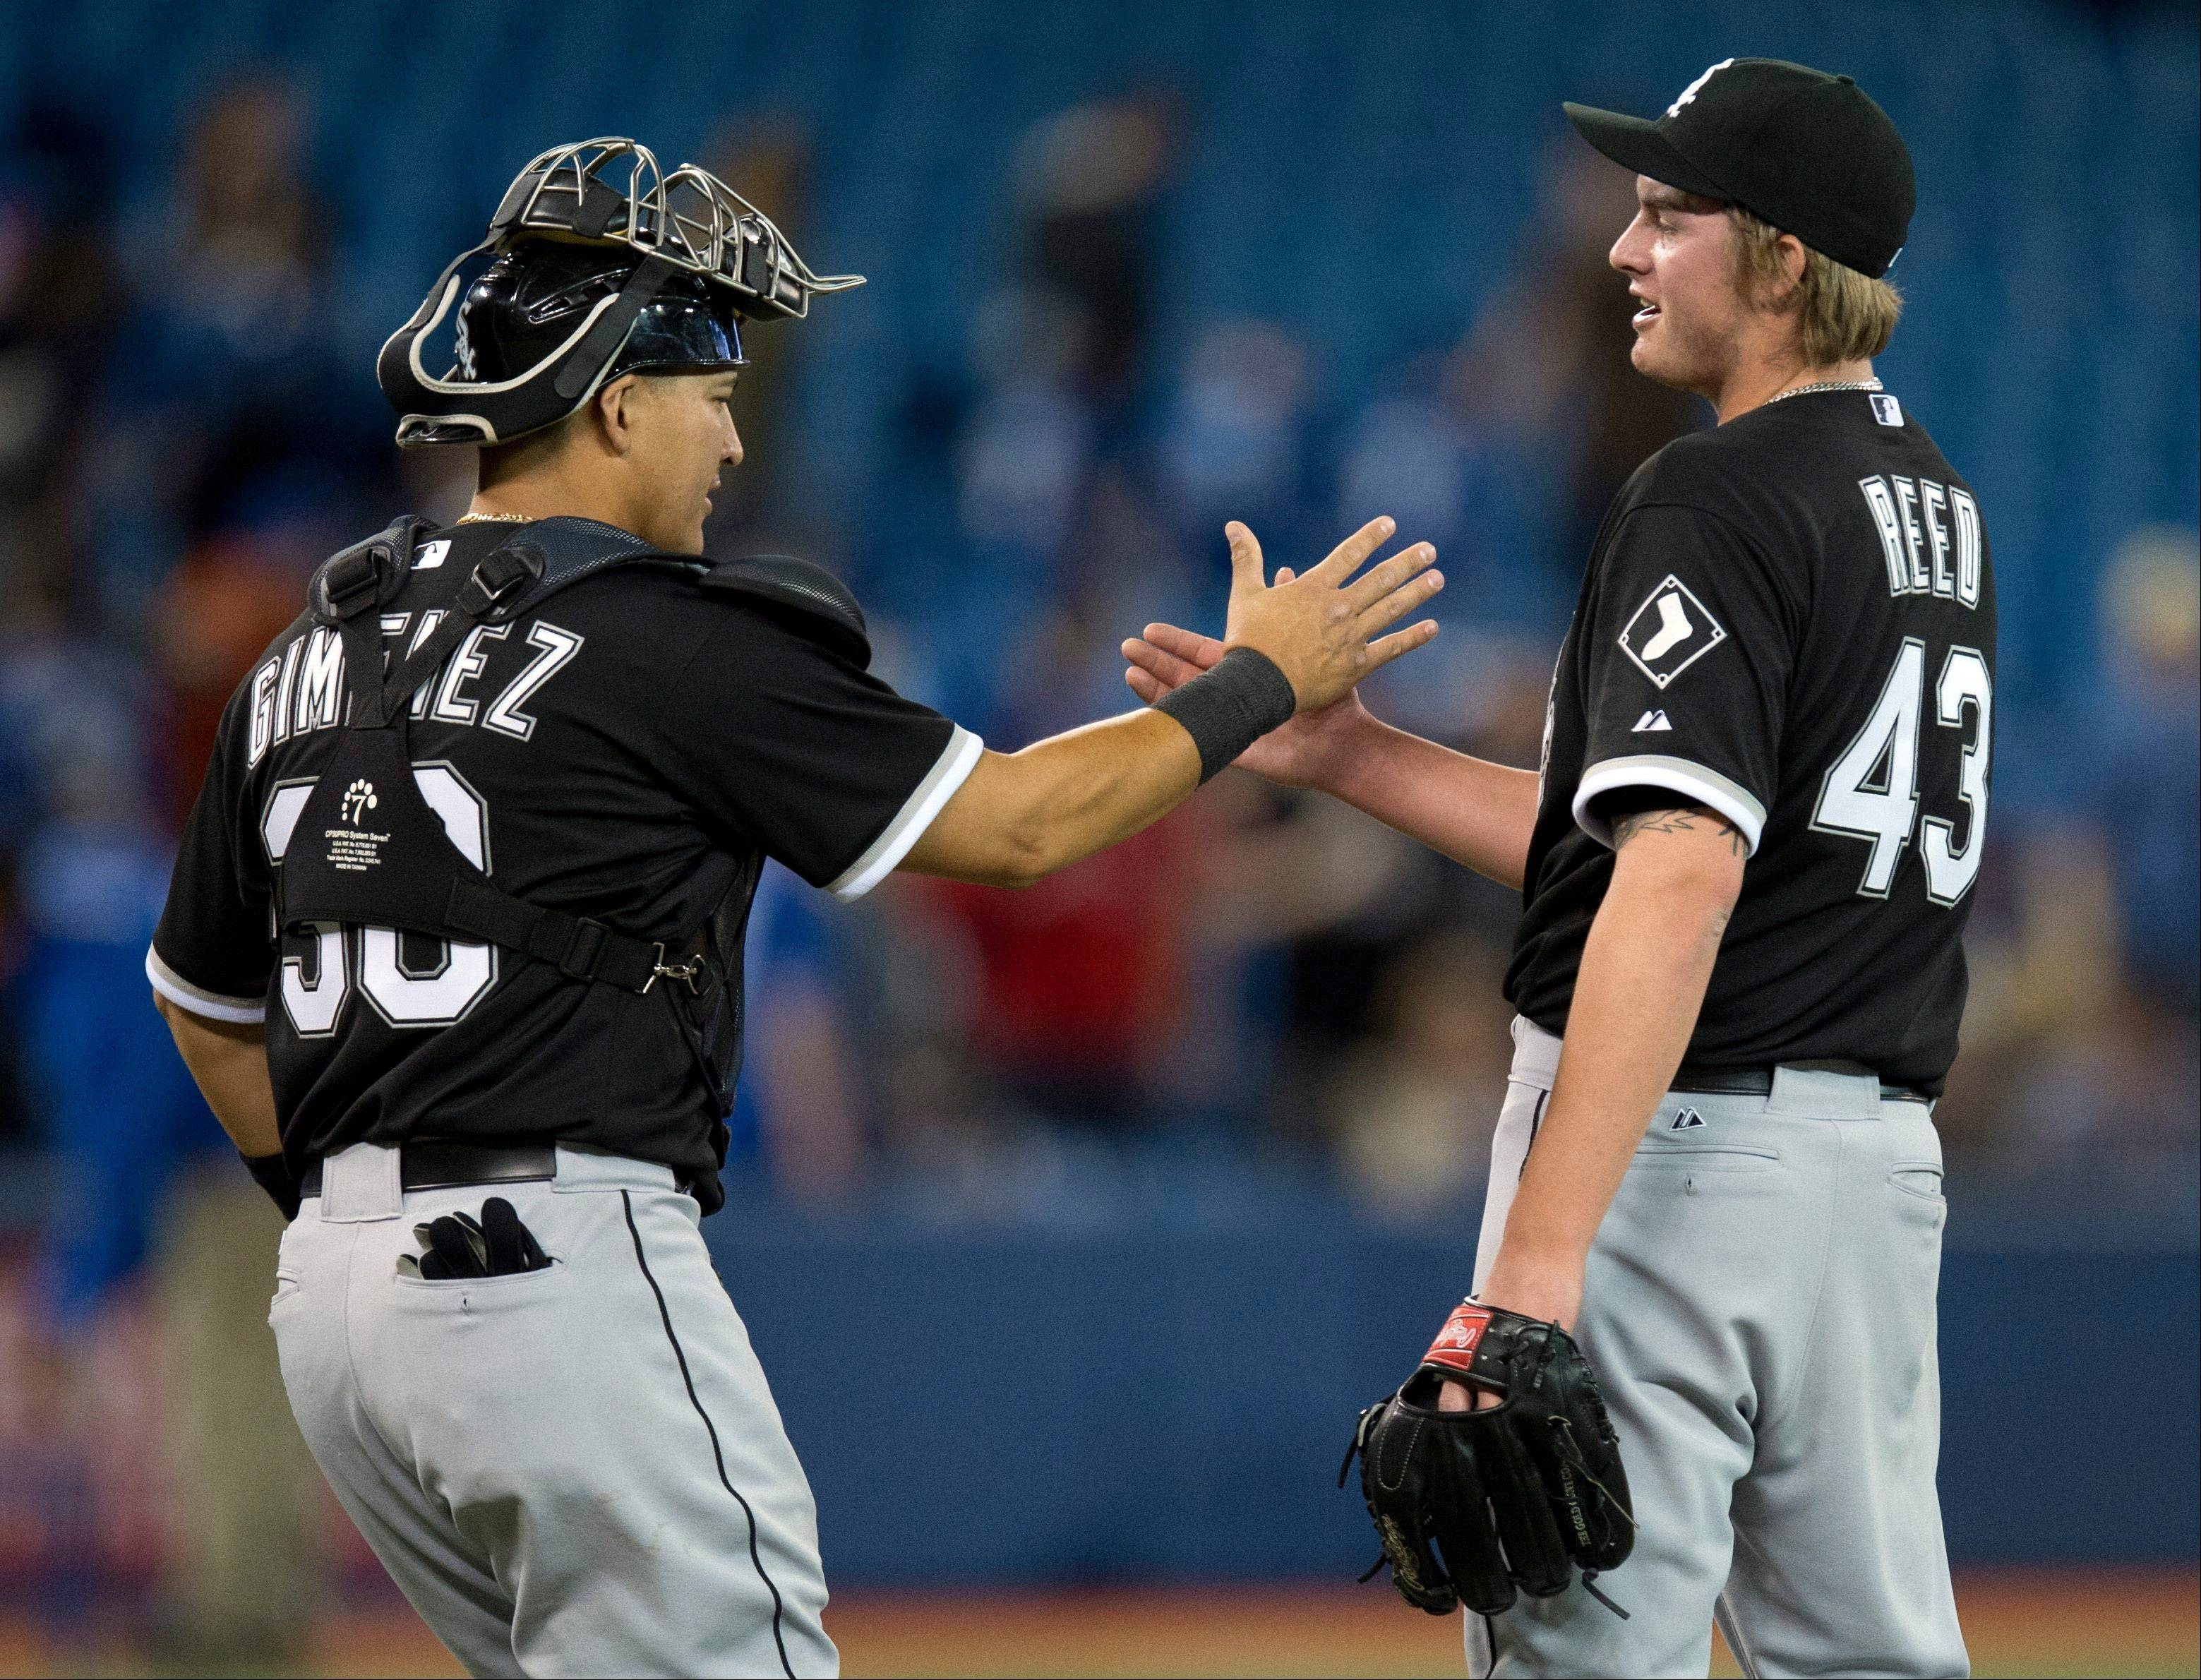 White Sox catcher Hector Gimenez congratulates pitcher Addison Reed after defeating the Blue Jays Tuesday night in Toronto.